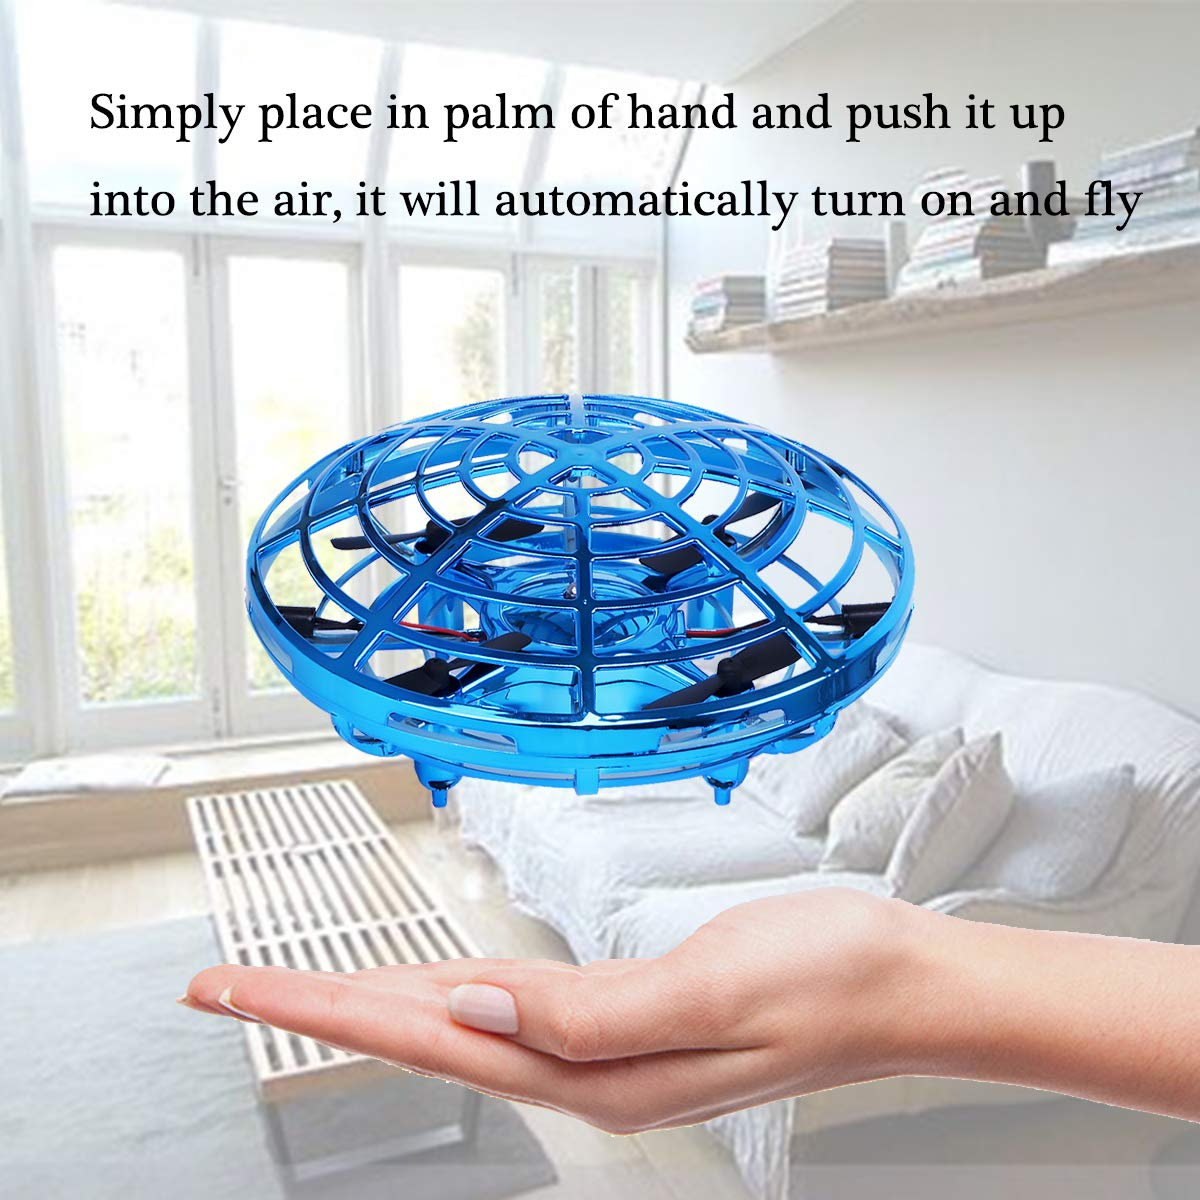 Hand Operated Drones for Kids or Adults, Light Up Joy Flying Ball Drone, Helicopter Mini Drone, Easy Indoor Small Flying Toys for Boys or Girls (Blue) by 98K (Image #3)